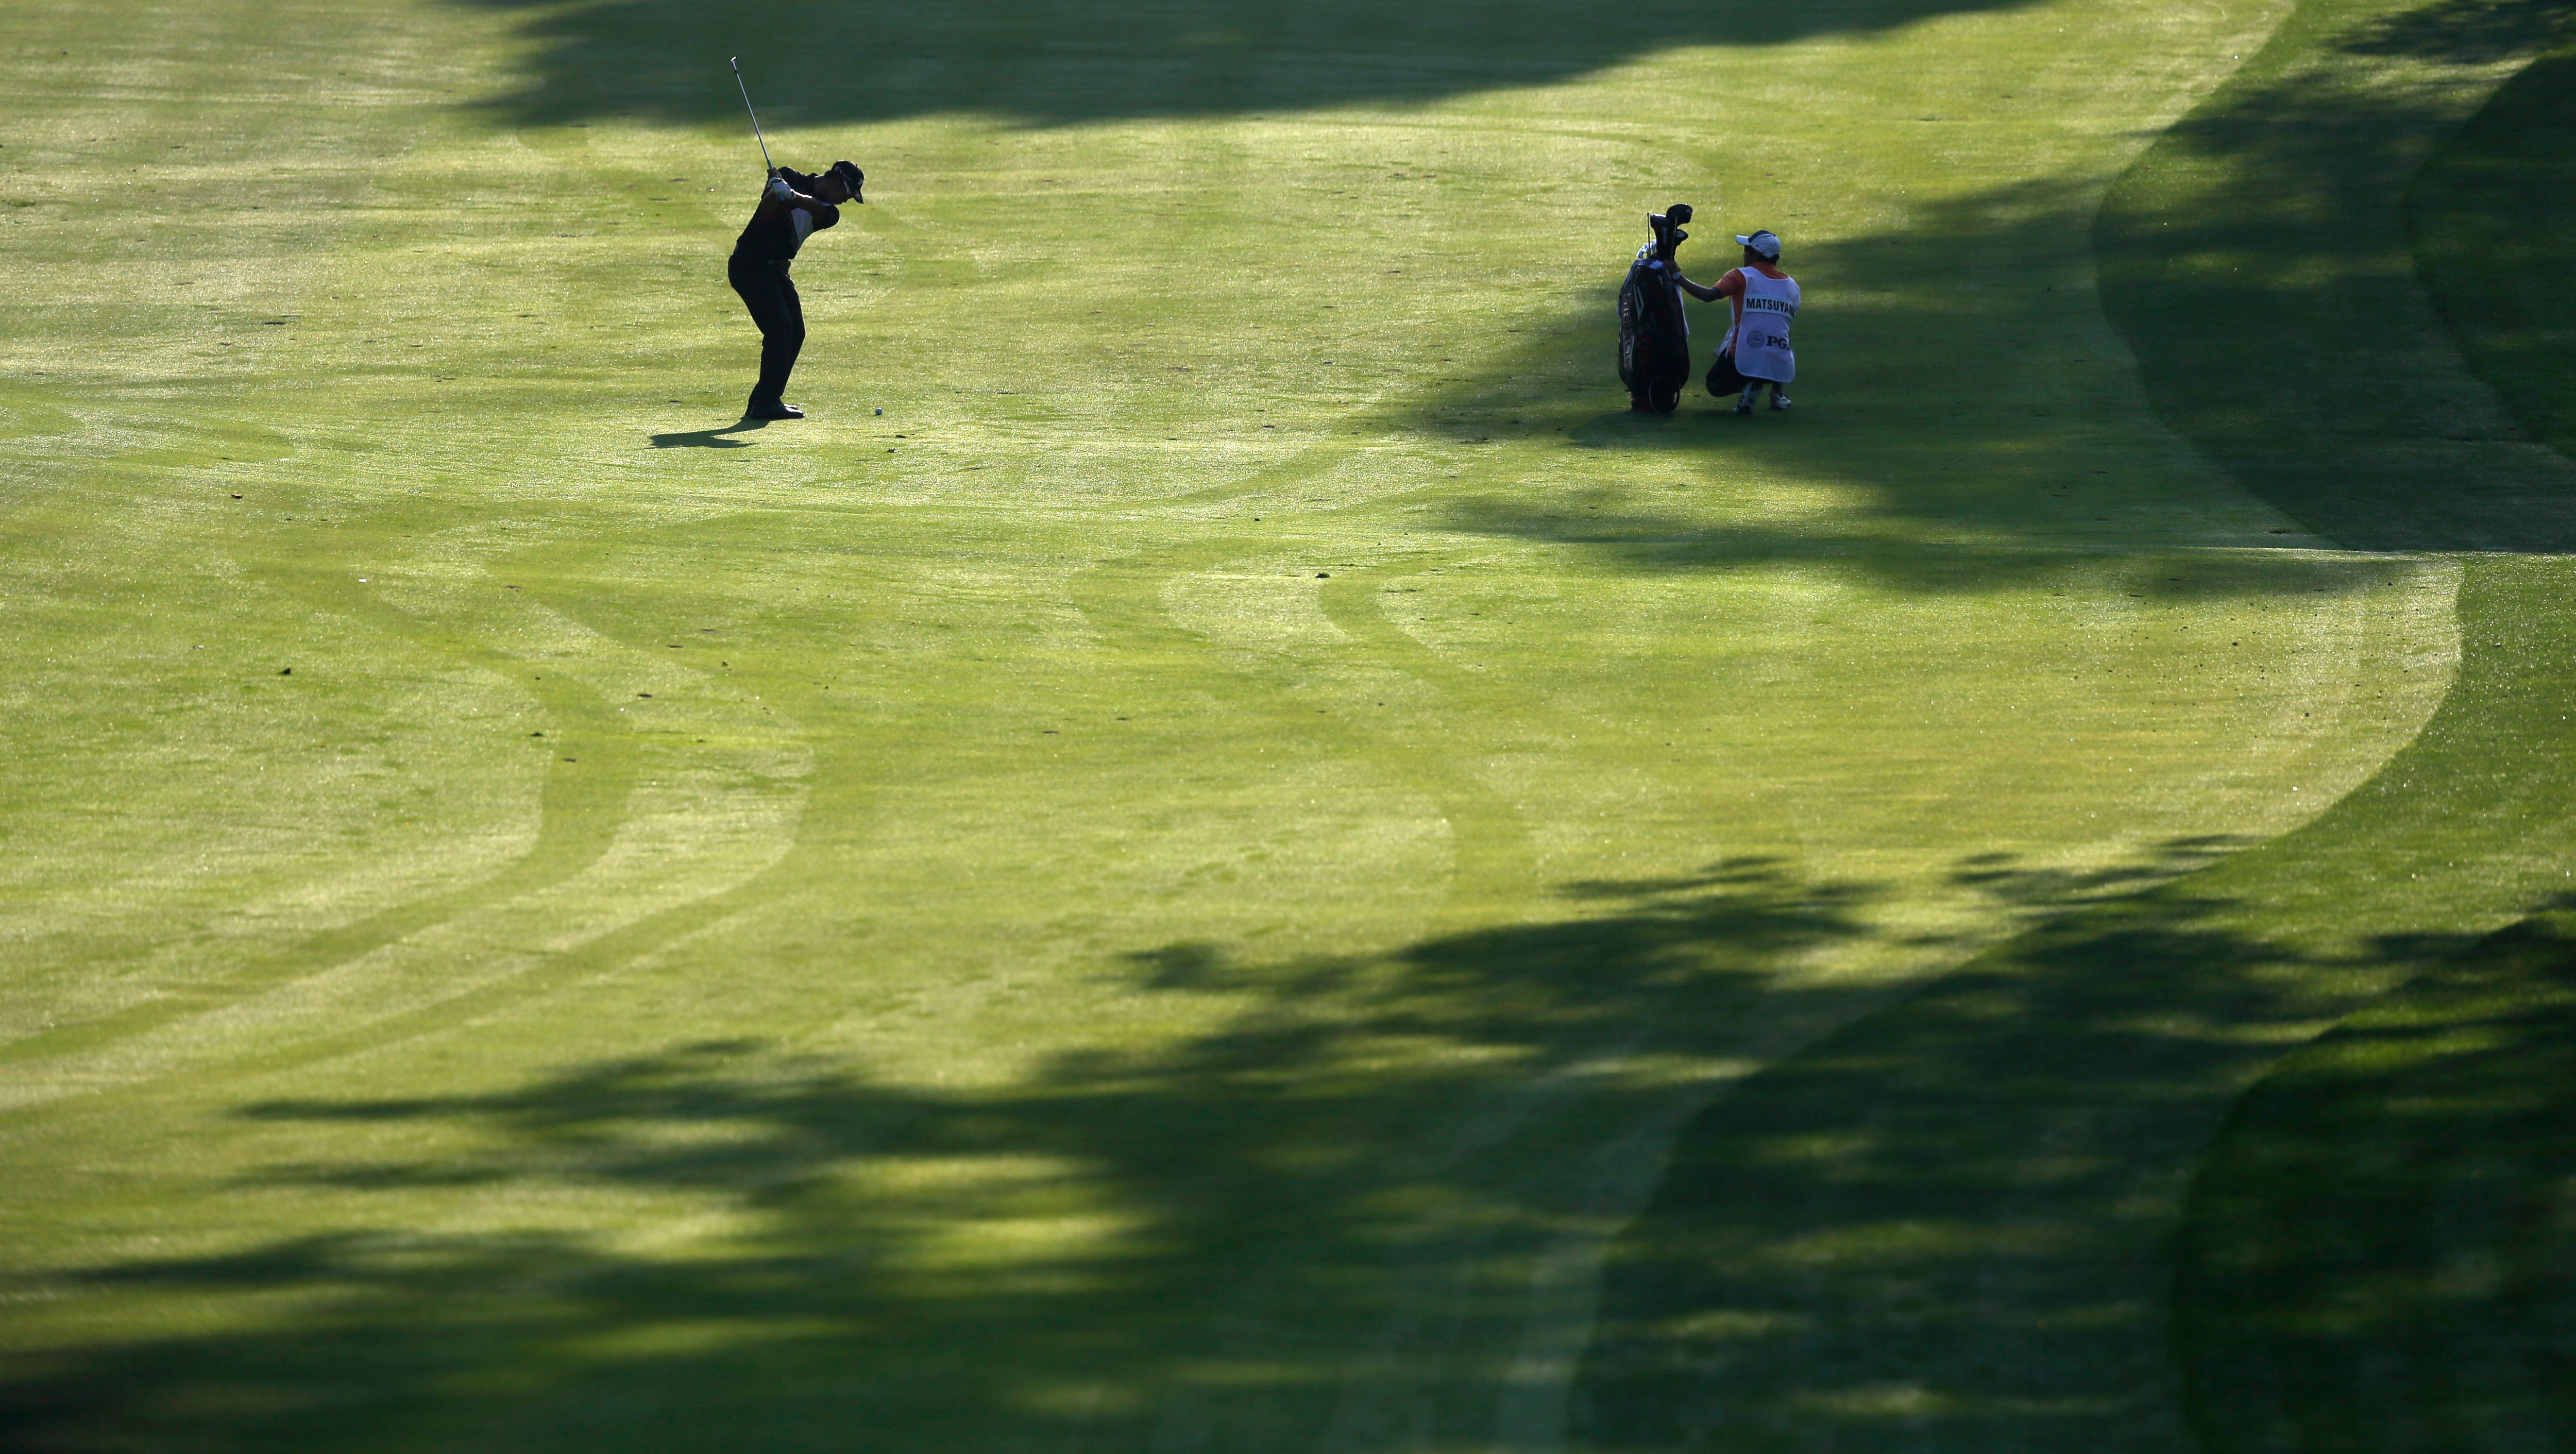 Hideki Matsuyama hits from the 10th fairway during the first round of the PGA Championship golf tournament at Oak Hill Country Club.